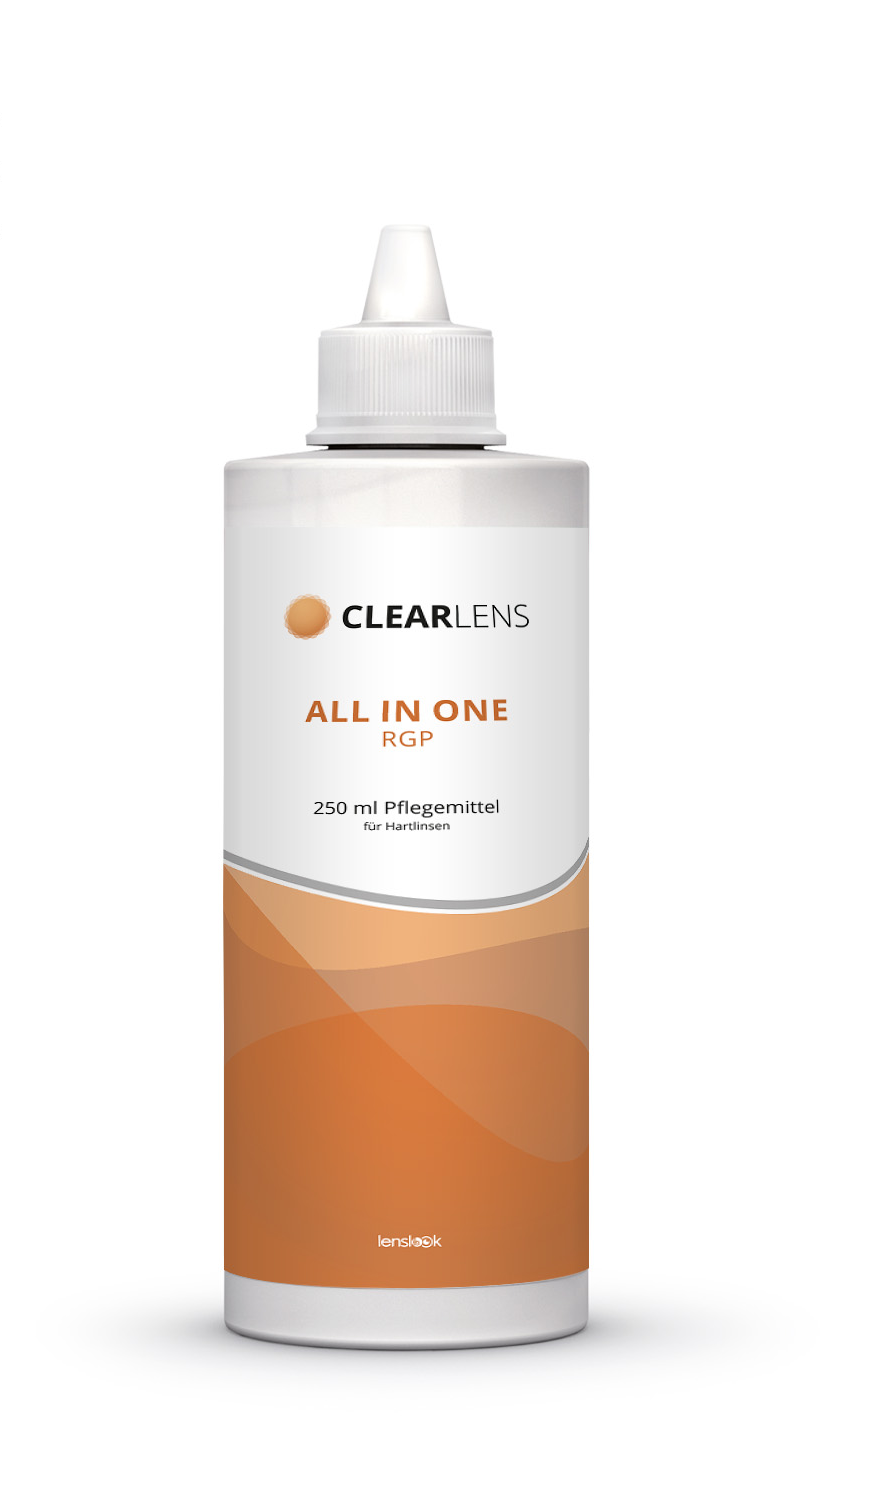 clearlens_RGP_250ml_all-in-one